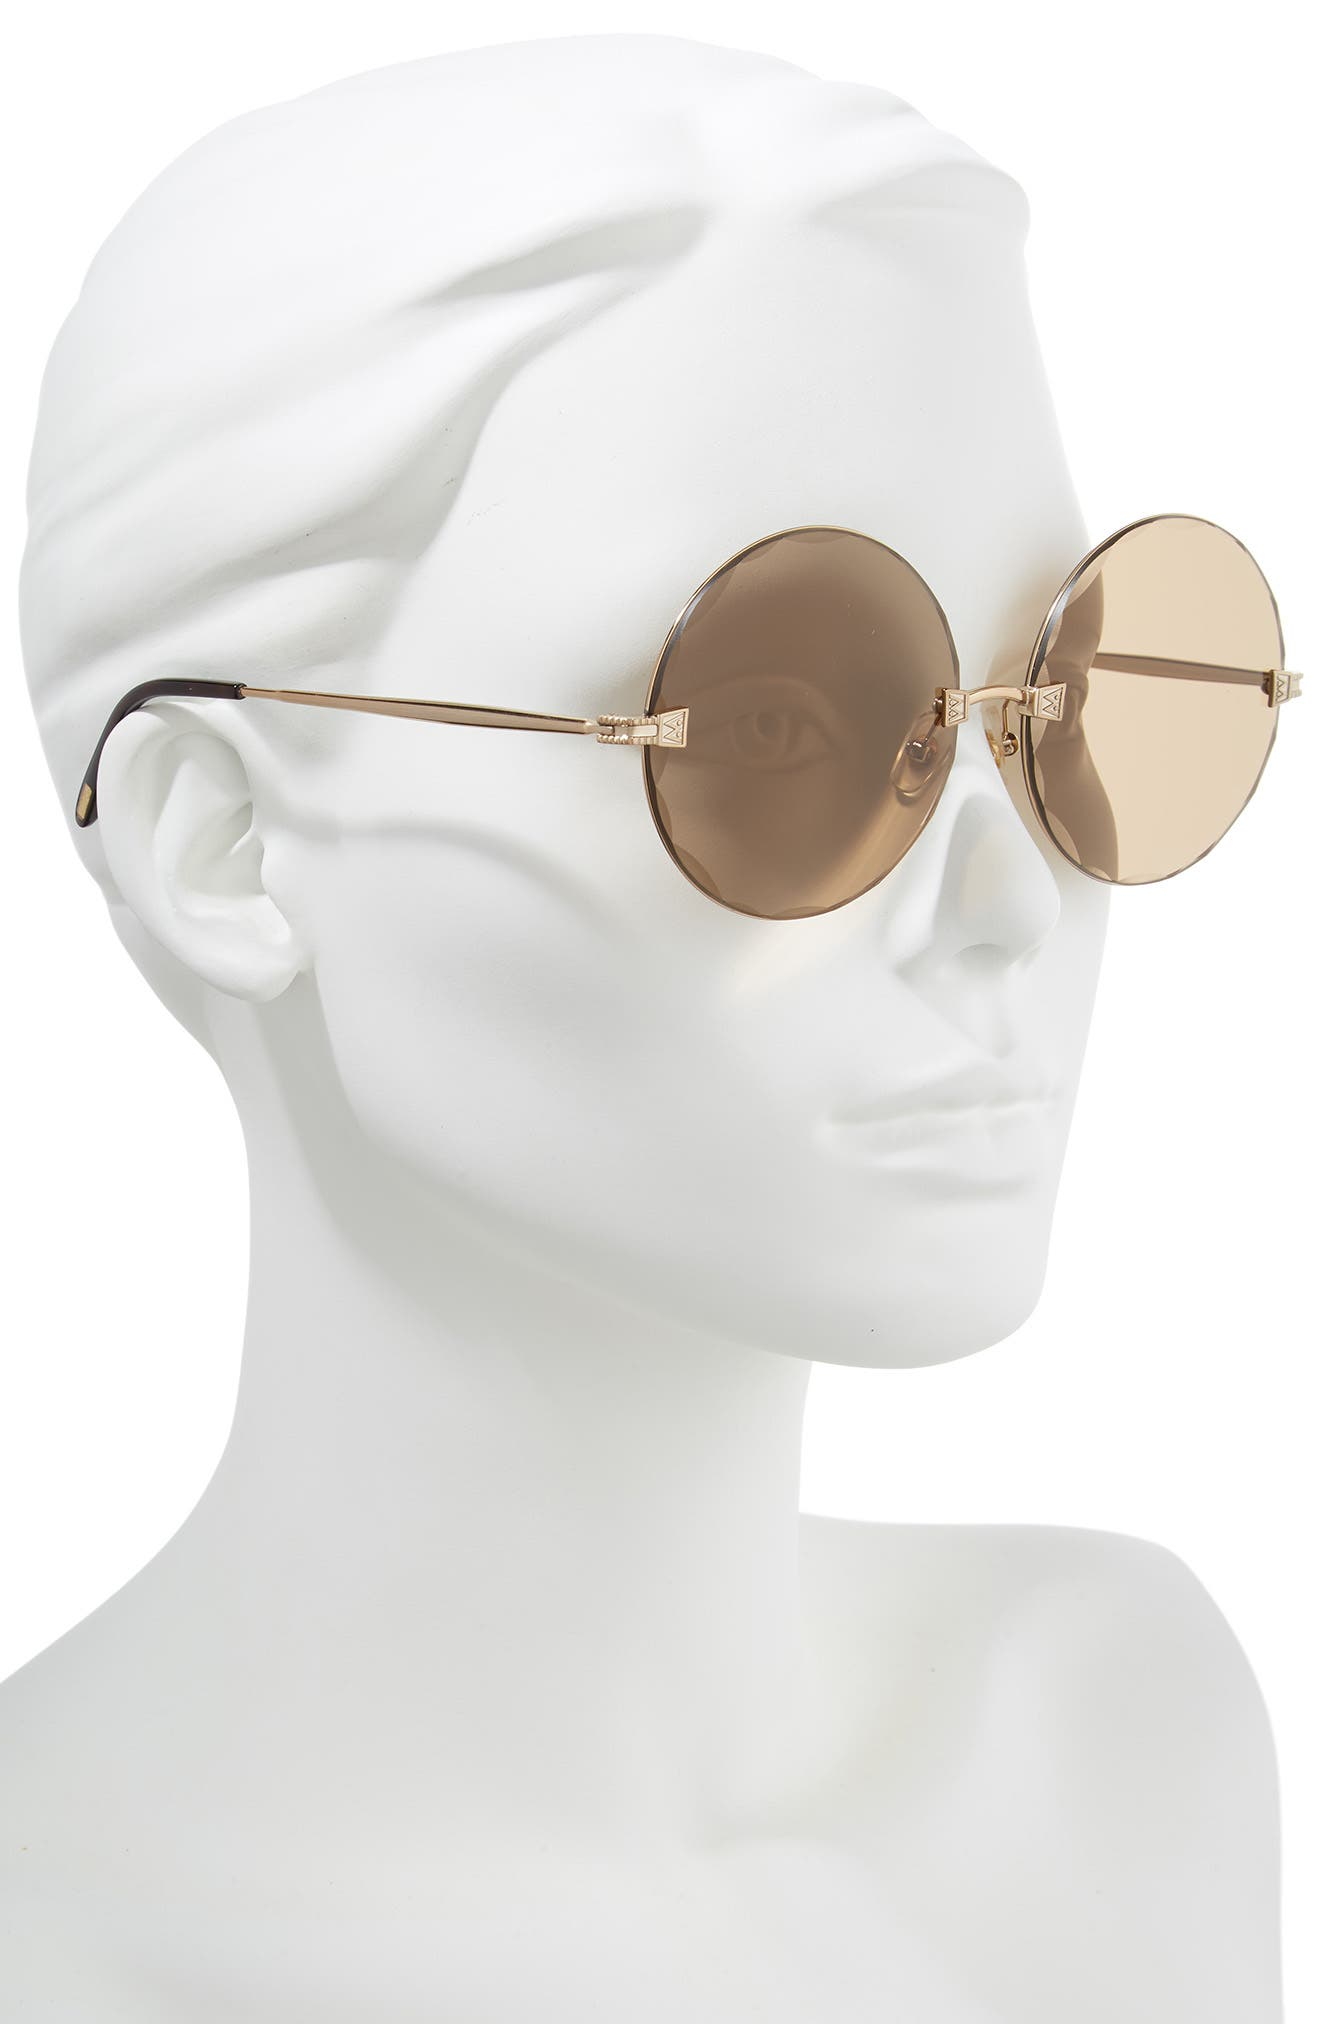 Starlight 62mm Oversize Round Sunglasses,                             Alternate thumbnail 2, color,                             ANTIQUE GOLD/ BROWN SOLID